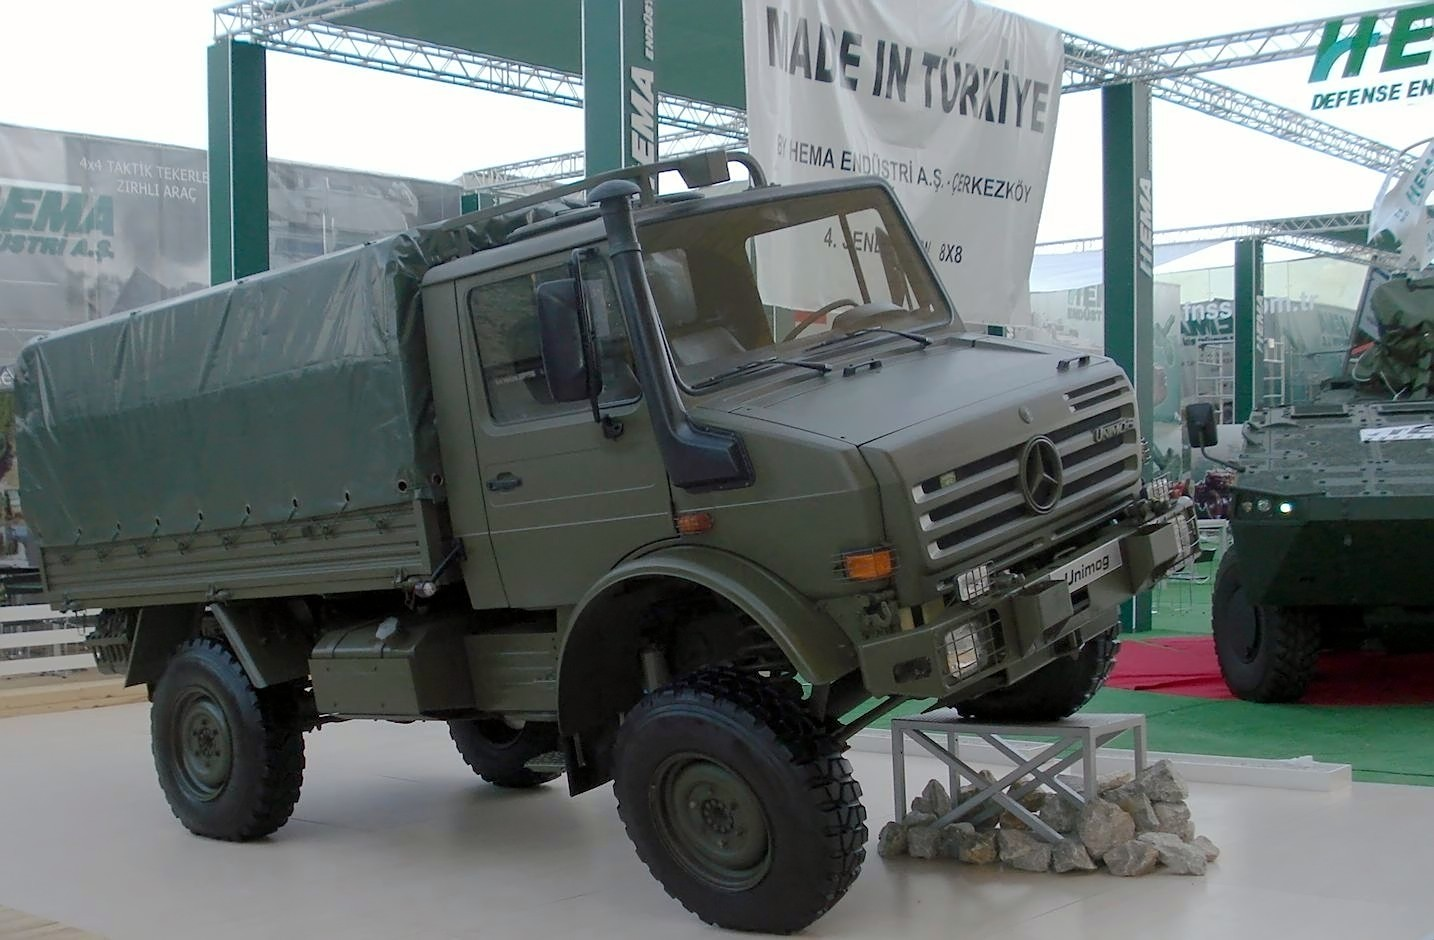 harga new land rover defender with File Mercedes Benz Unimog Turkey Exhibition Side on Komunitas Honda Civic furthermore Index also Toyota Rush G 2015 likewise Showthread additionally File Mercedes Benz Unimog Turkey exhibition side.